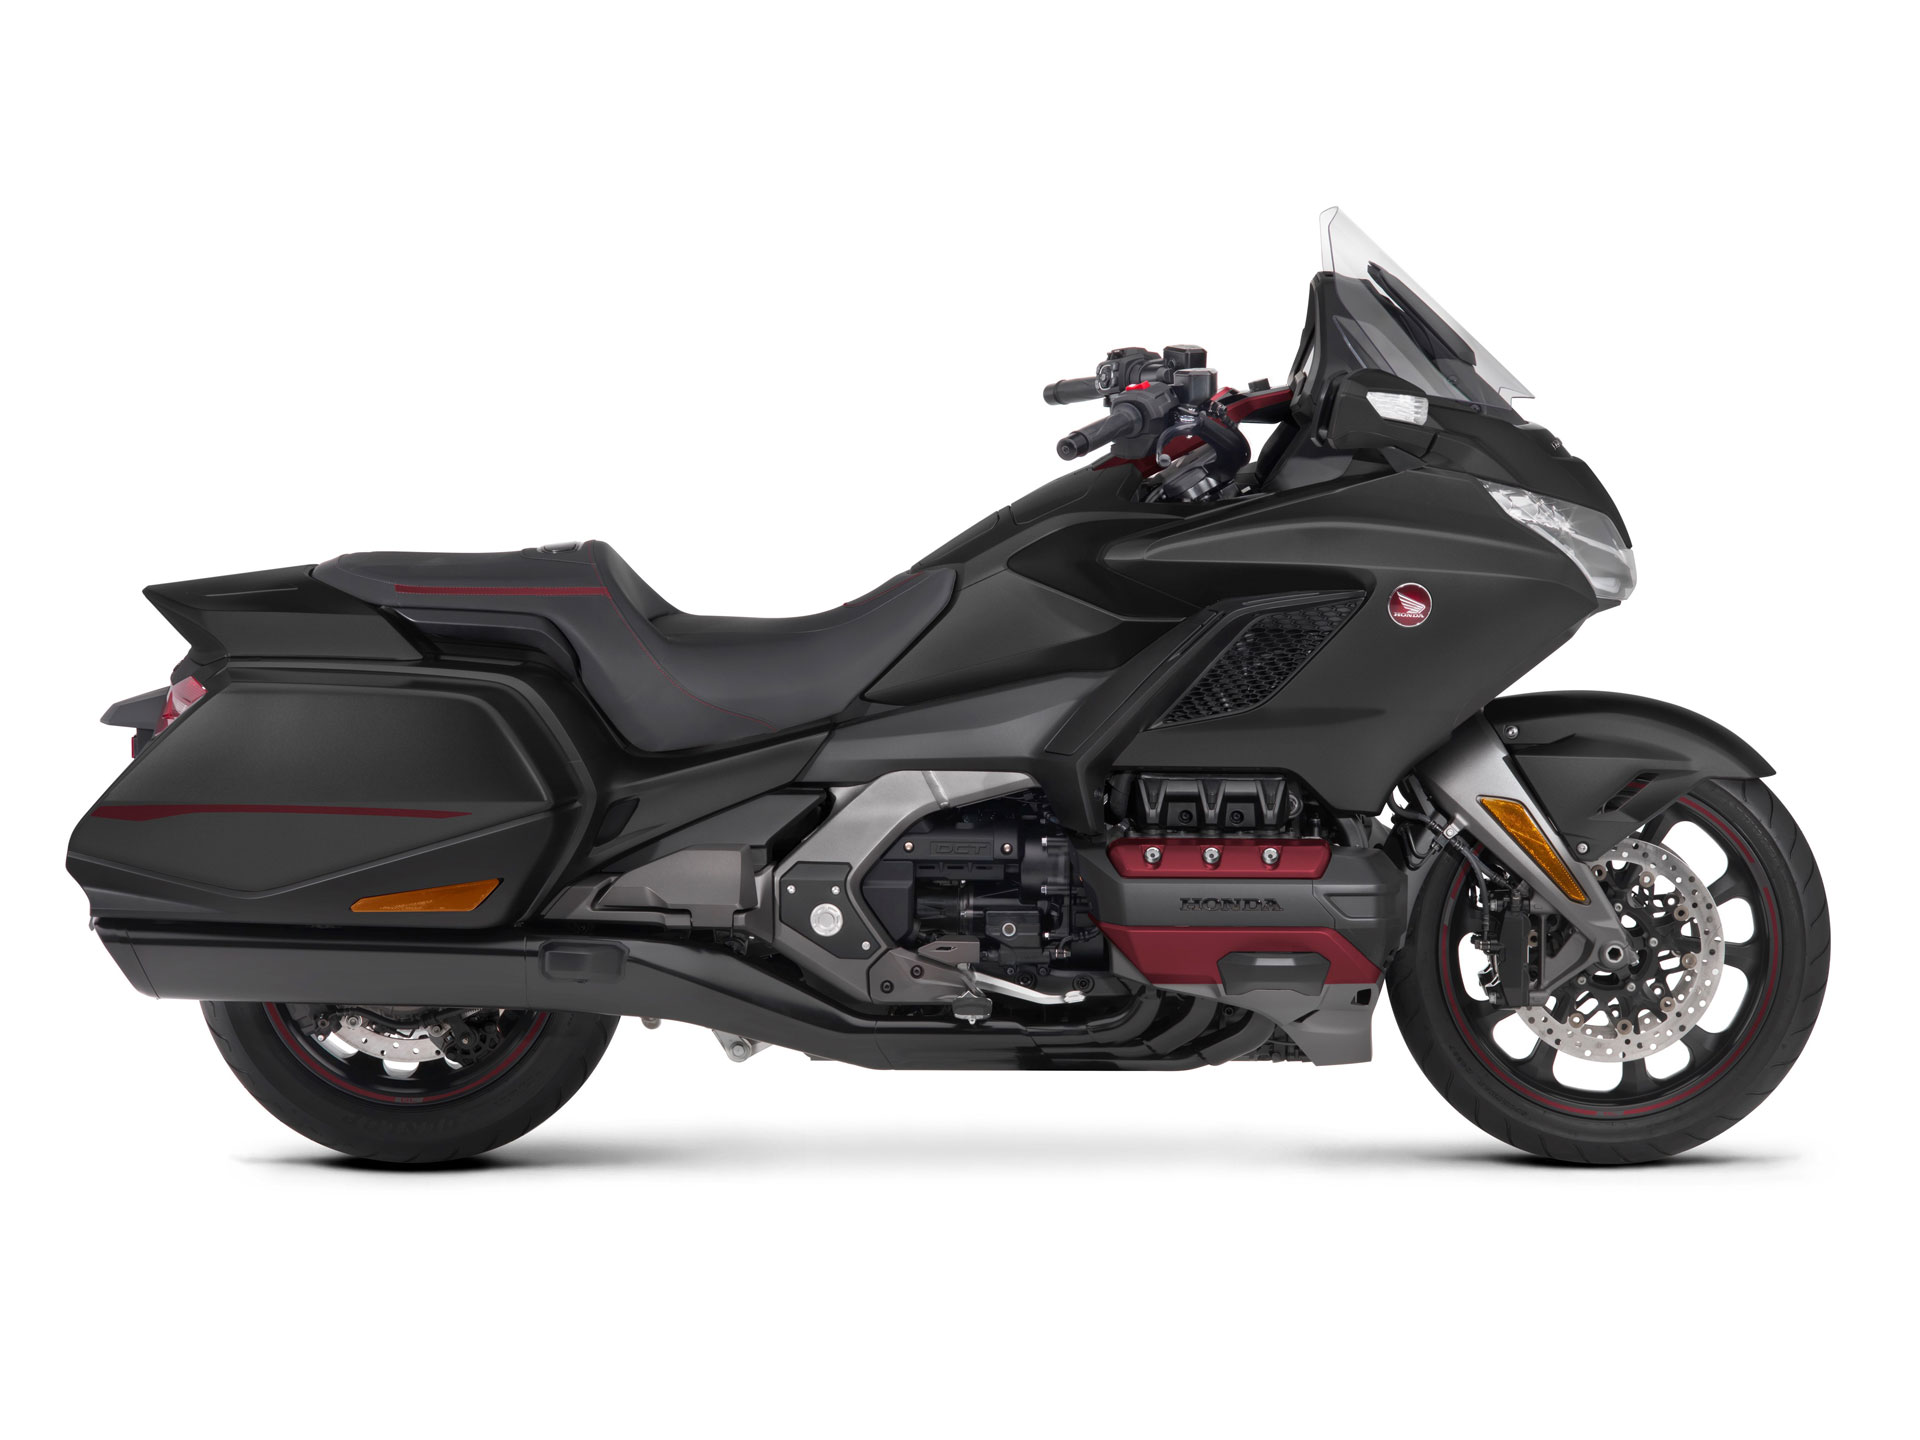 GL 1800 Goldwing DCT